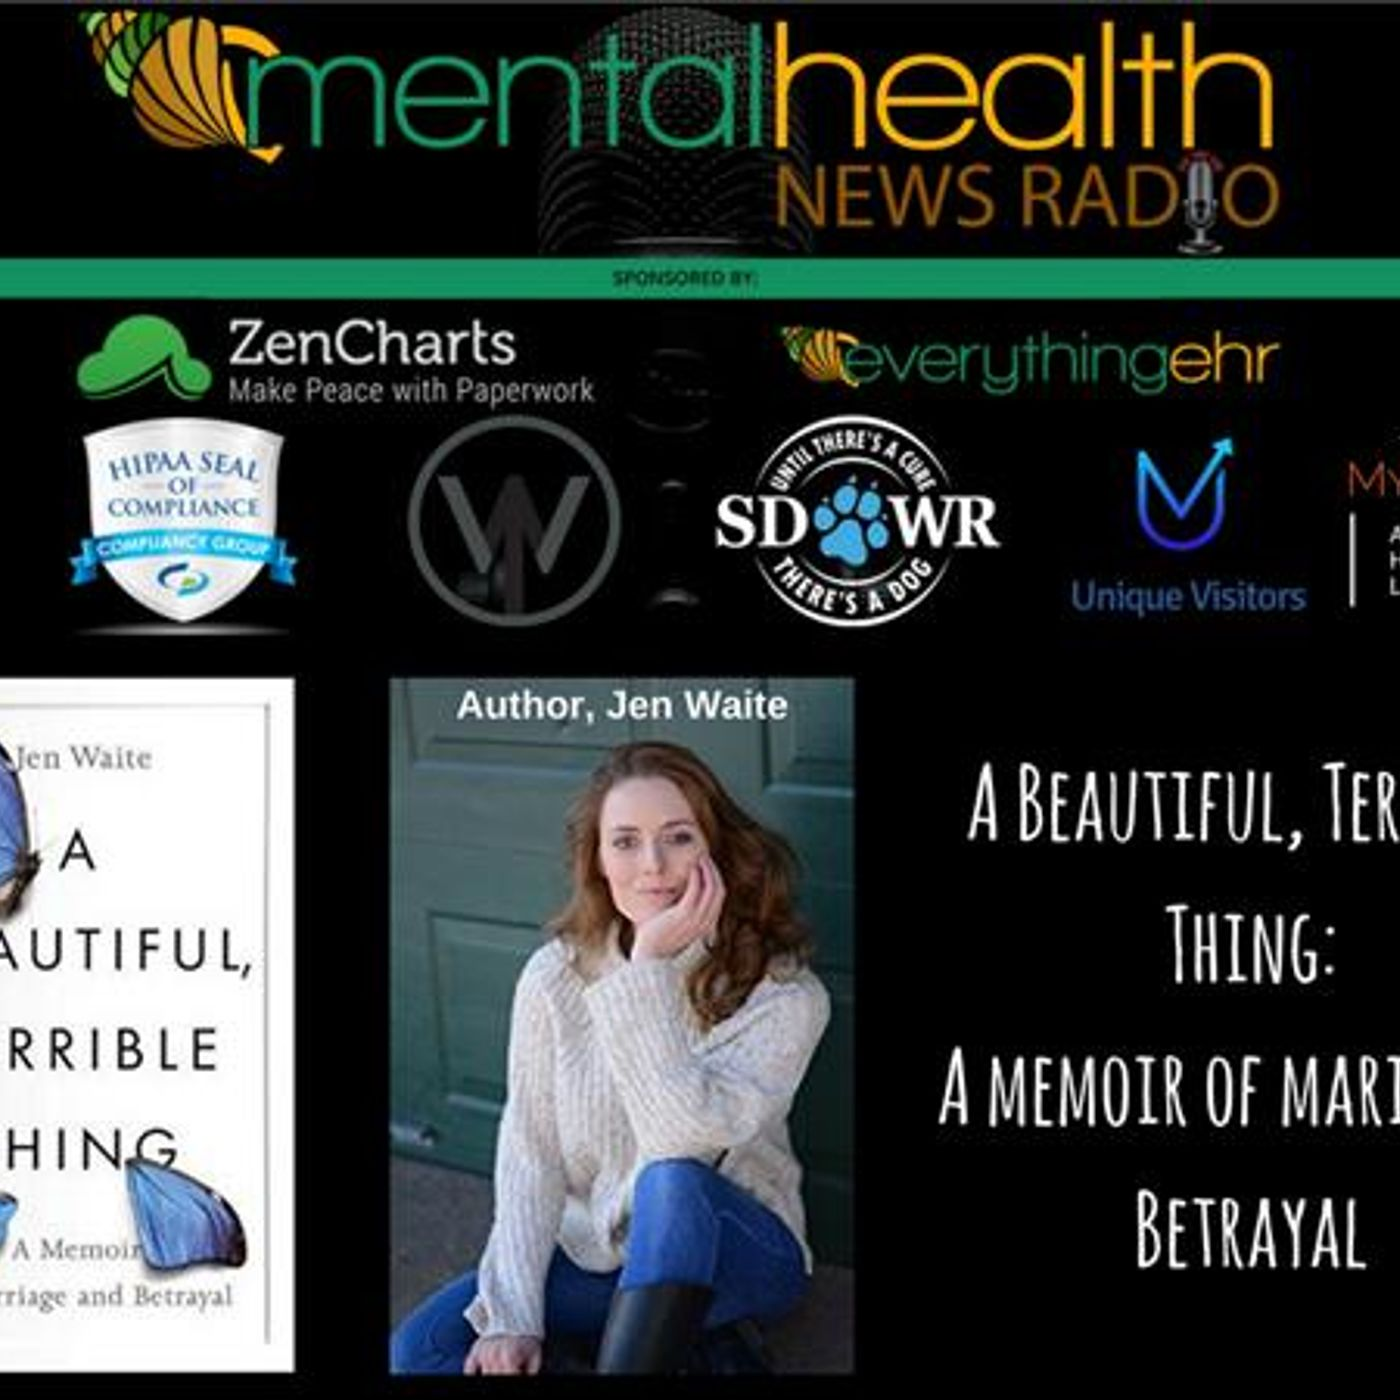 Mental Health News Radio - A Beautiful Terrible Thing: A Memoir of Marriage and Betrayal with Jen Waite